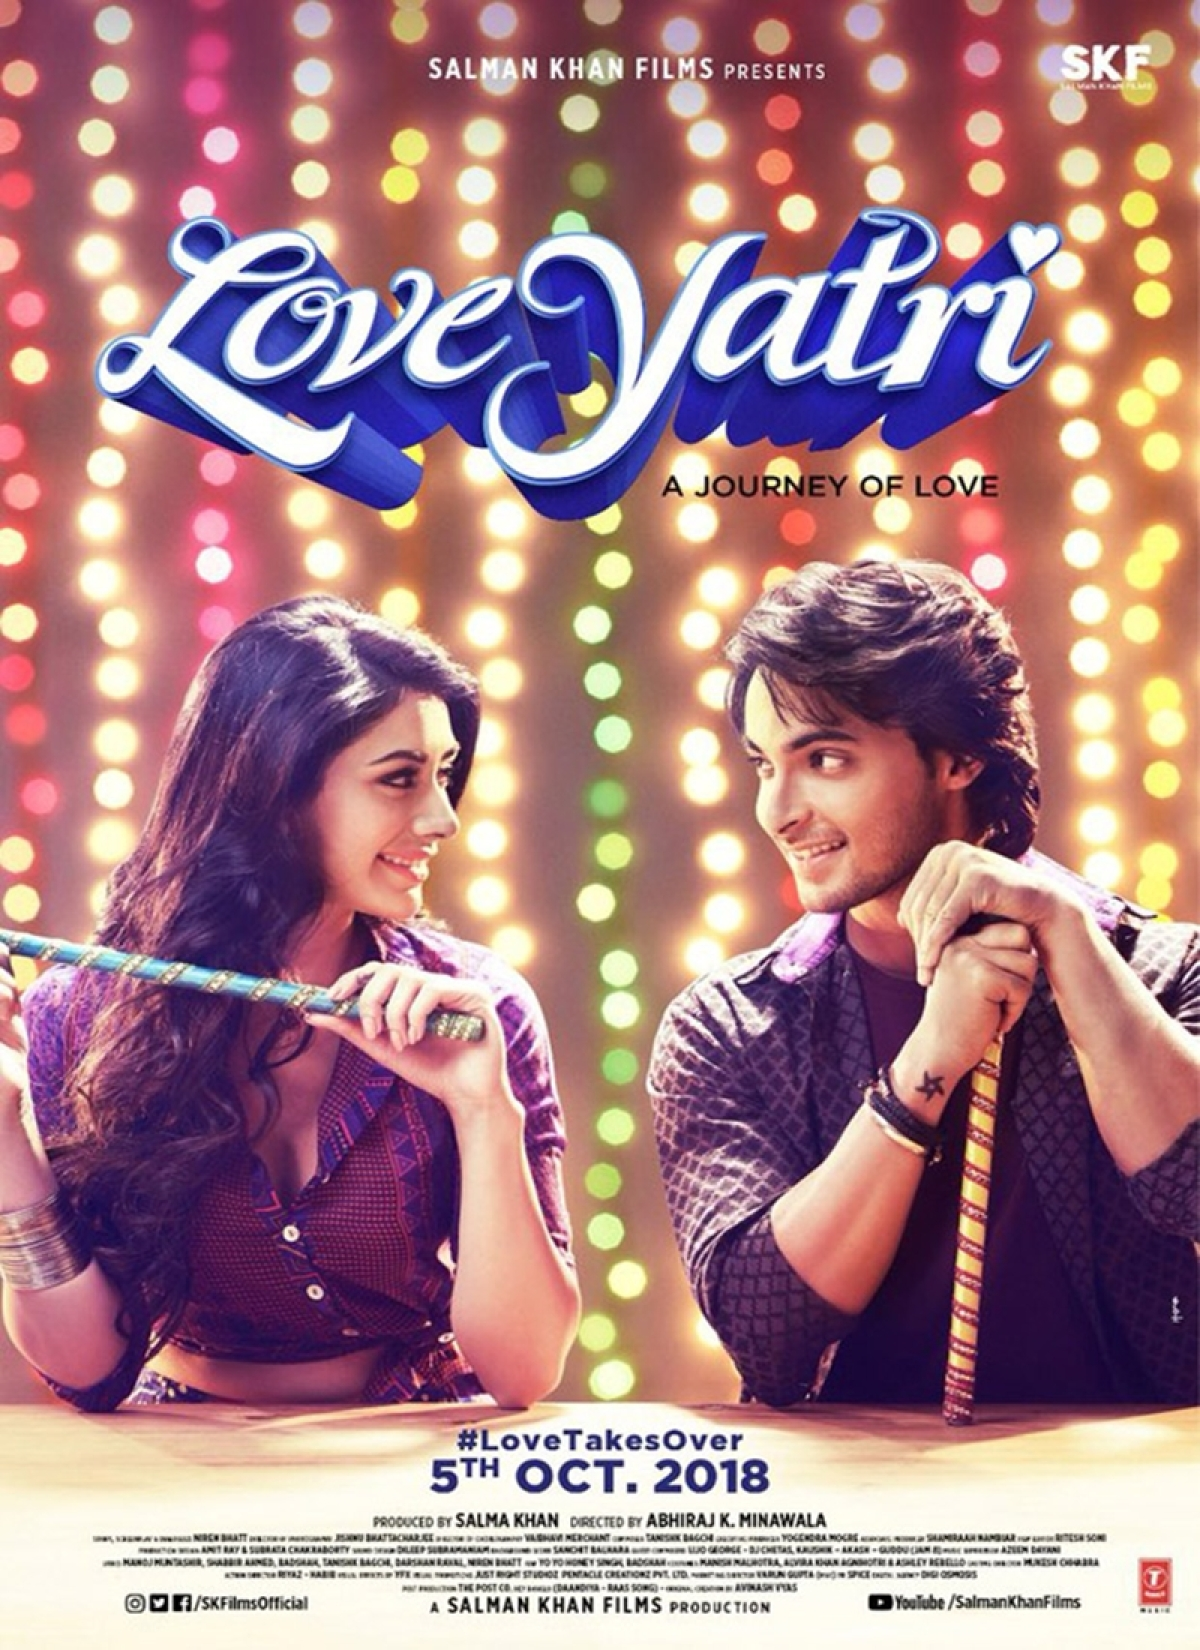 Salman Khan changes Aayush Sharma-Warina Hussain's film name 'Loveratri' to 'Love Yatri'